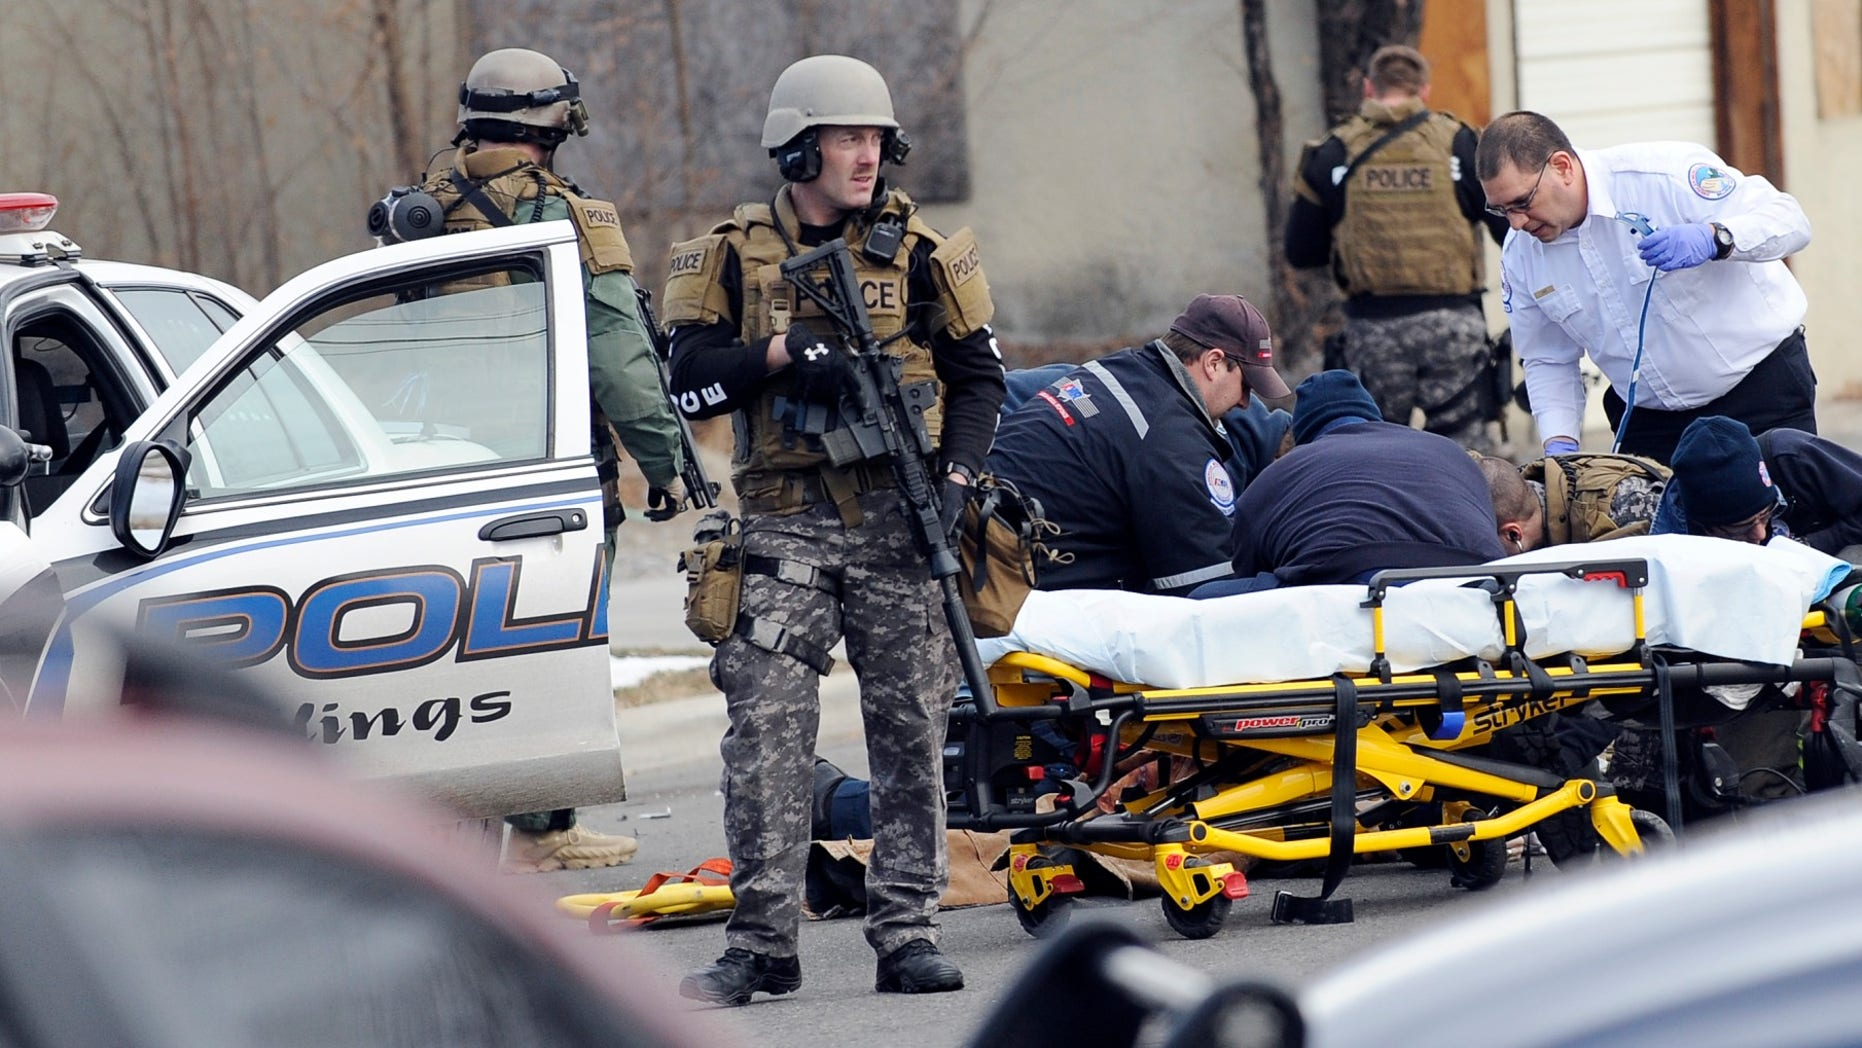 In this Sunday, Jan. 6, 2013 photo, SWAT team members stand guard as a man is given CPR after a standoff with police and the SWAT team in Billings, Mont. The standoff ended with the death of a handcuffed burglary suspect who hit a Montana police officer with his own patrol car before the officer opened fire. (AP Photo/The Billings Gazette, James Woodcock)